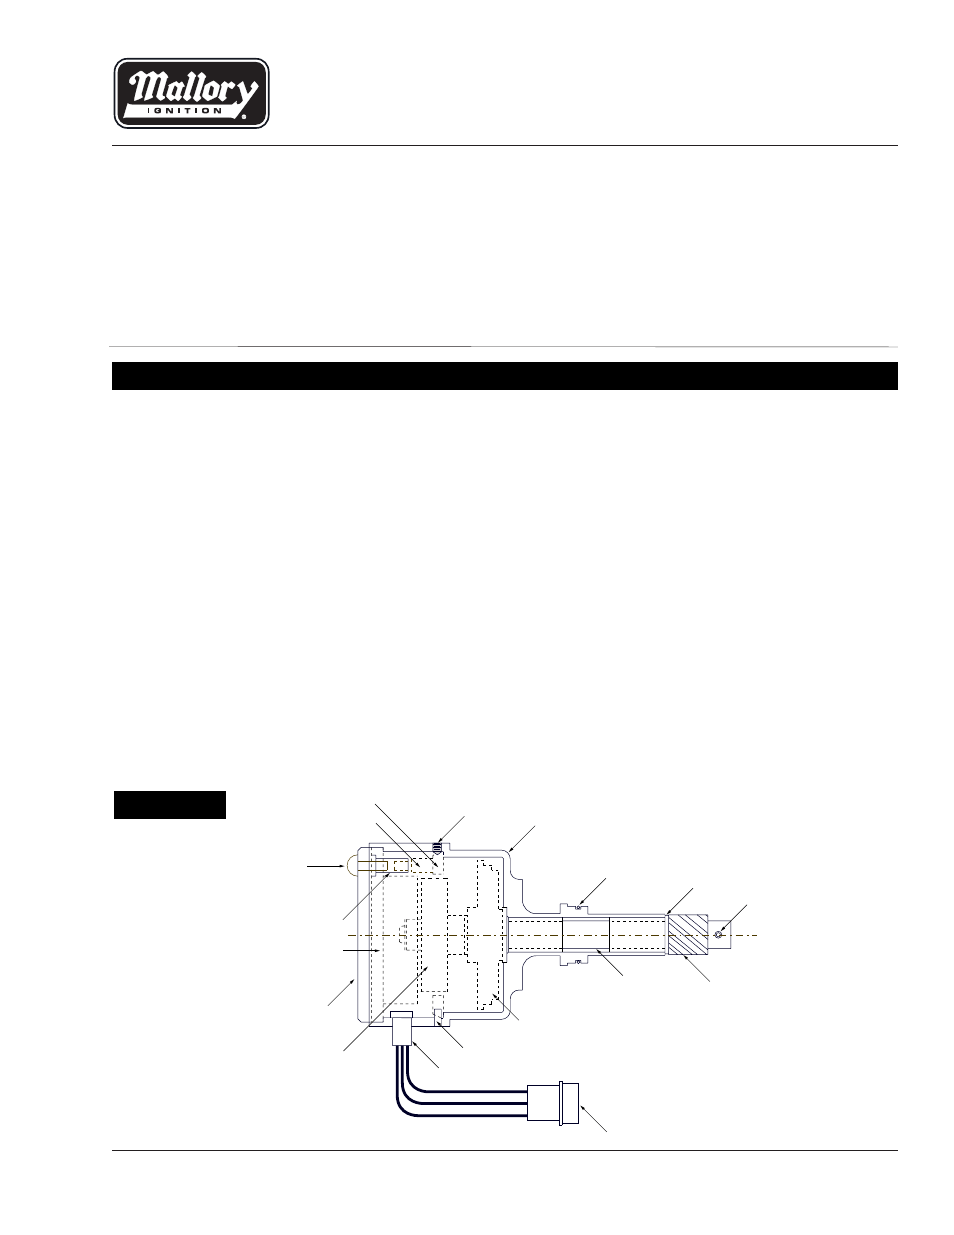 Mallory Comp 9000 Distributor To Msd Ignition Wiring Diagram Wire Electronic Unilite 42 Basic Crane